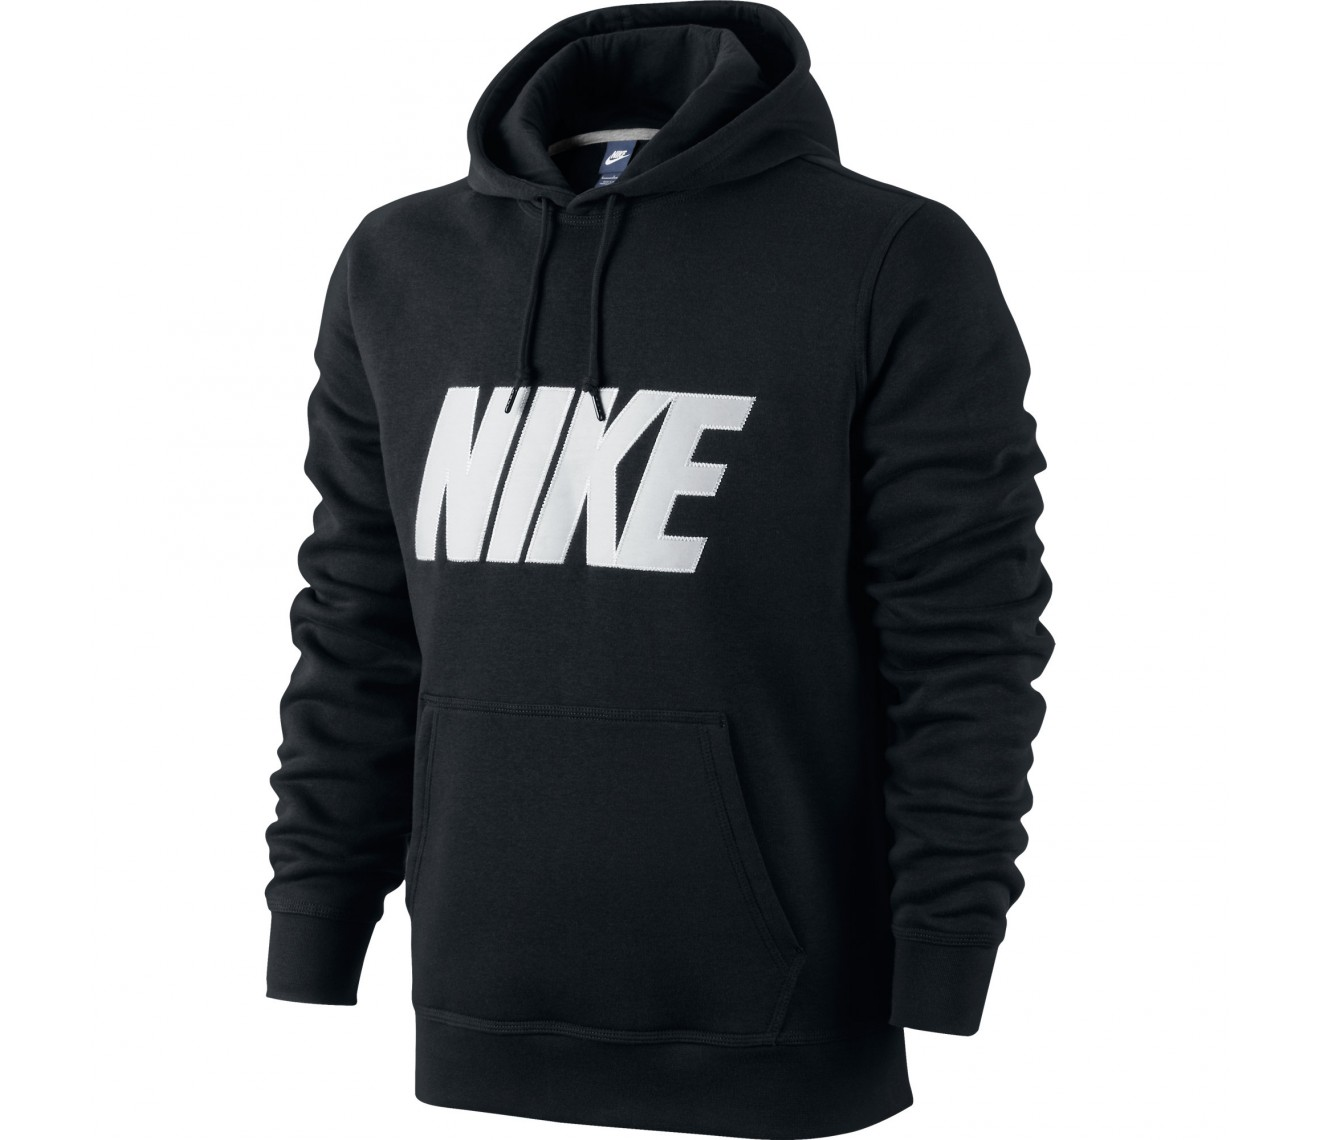 nike pullover bekleidung einebinsenweisheit. Black Bedroom Furniture Sets. Home Design Ideas